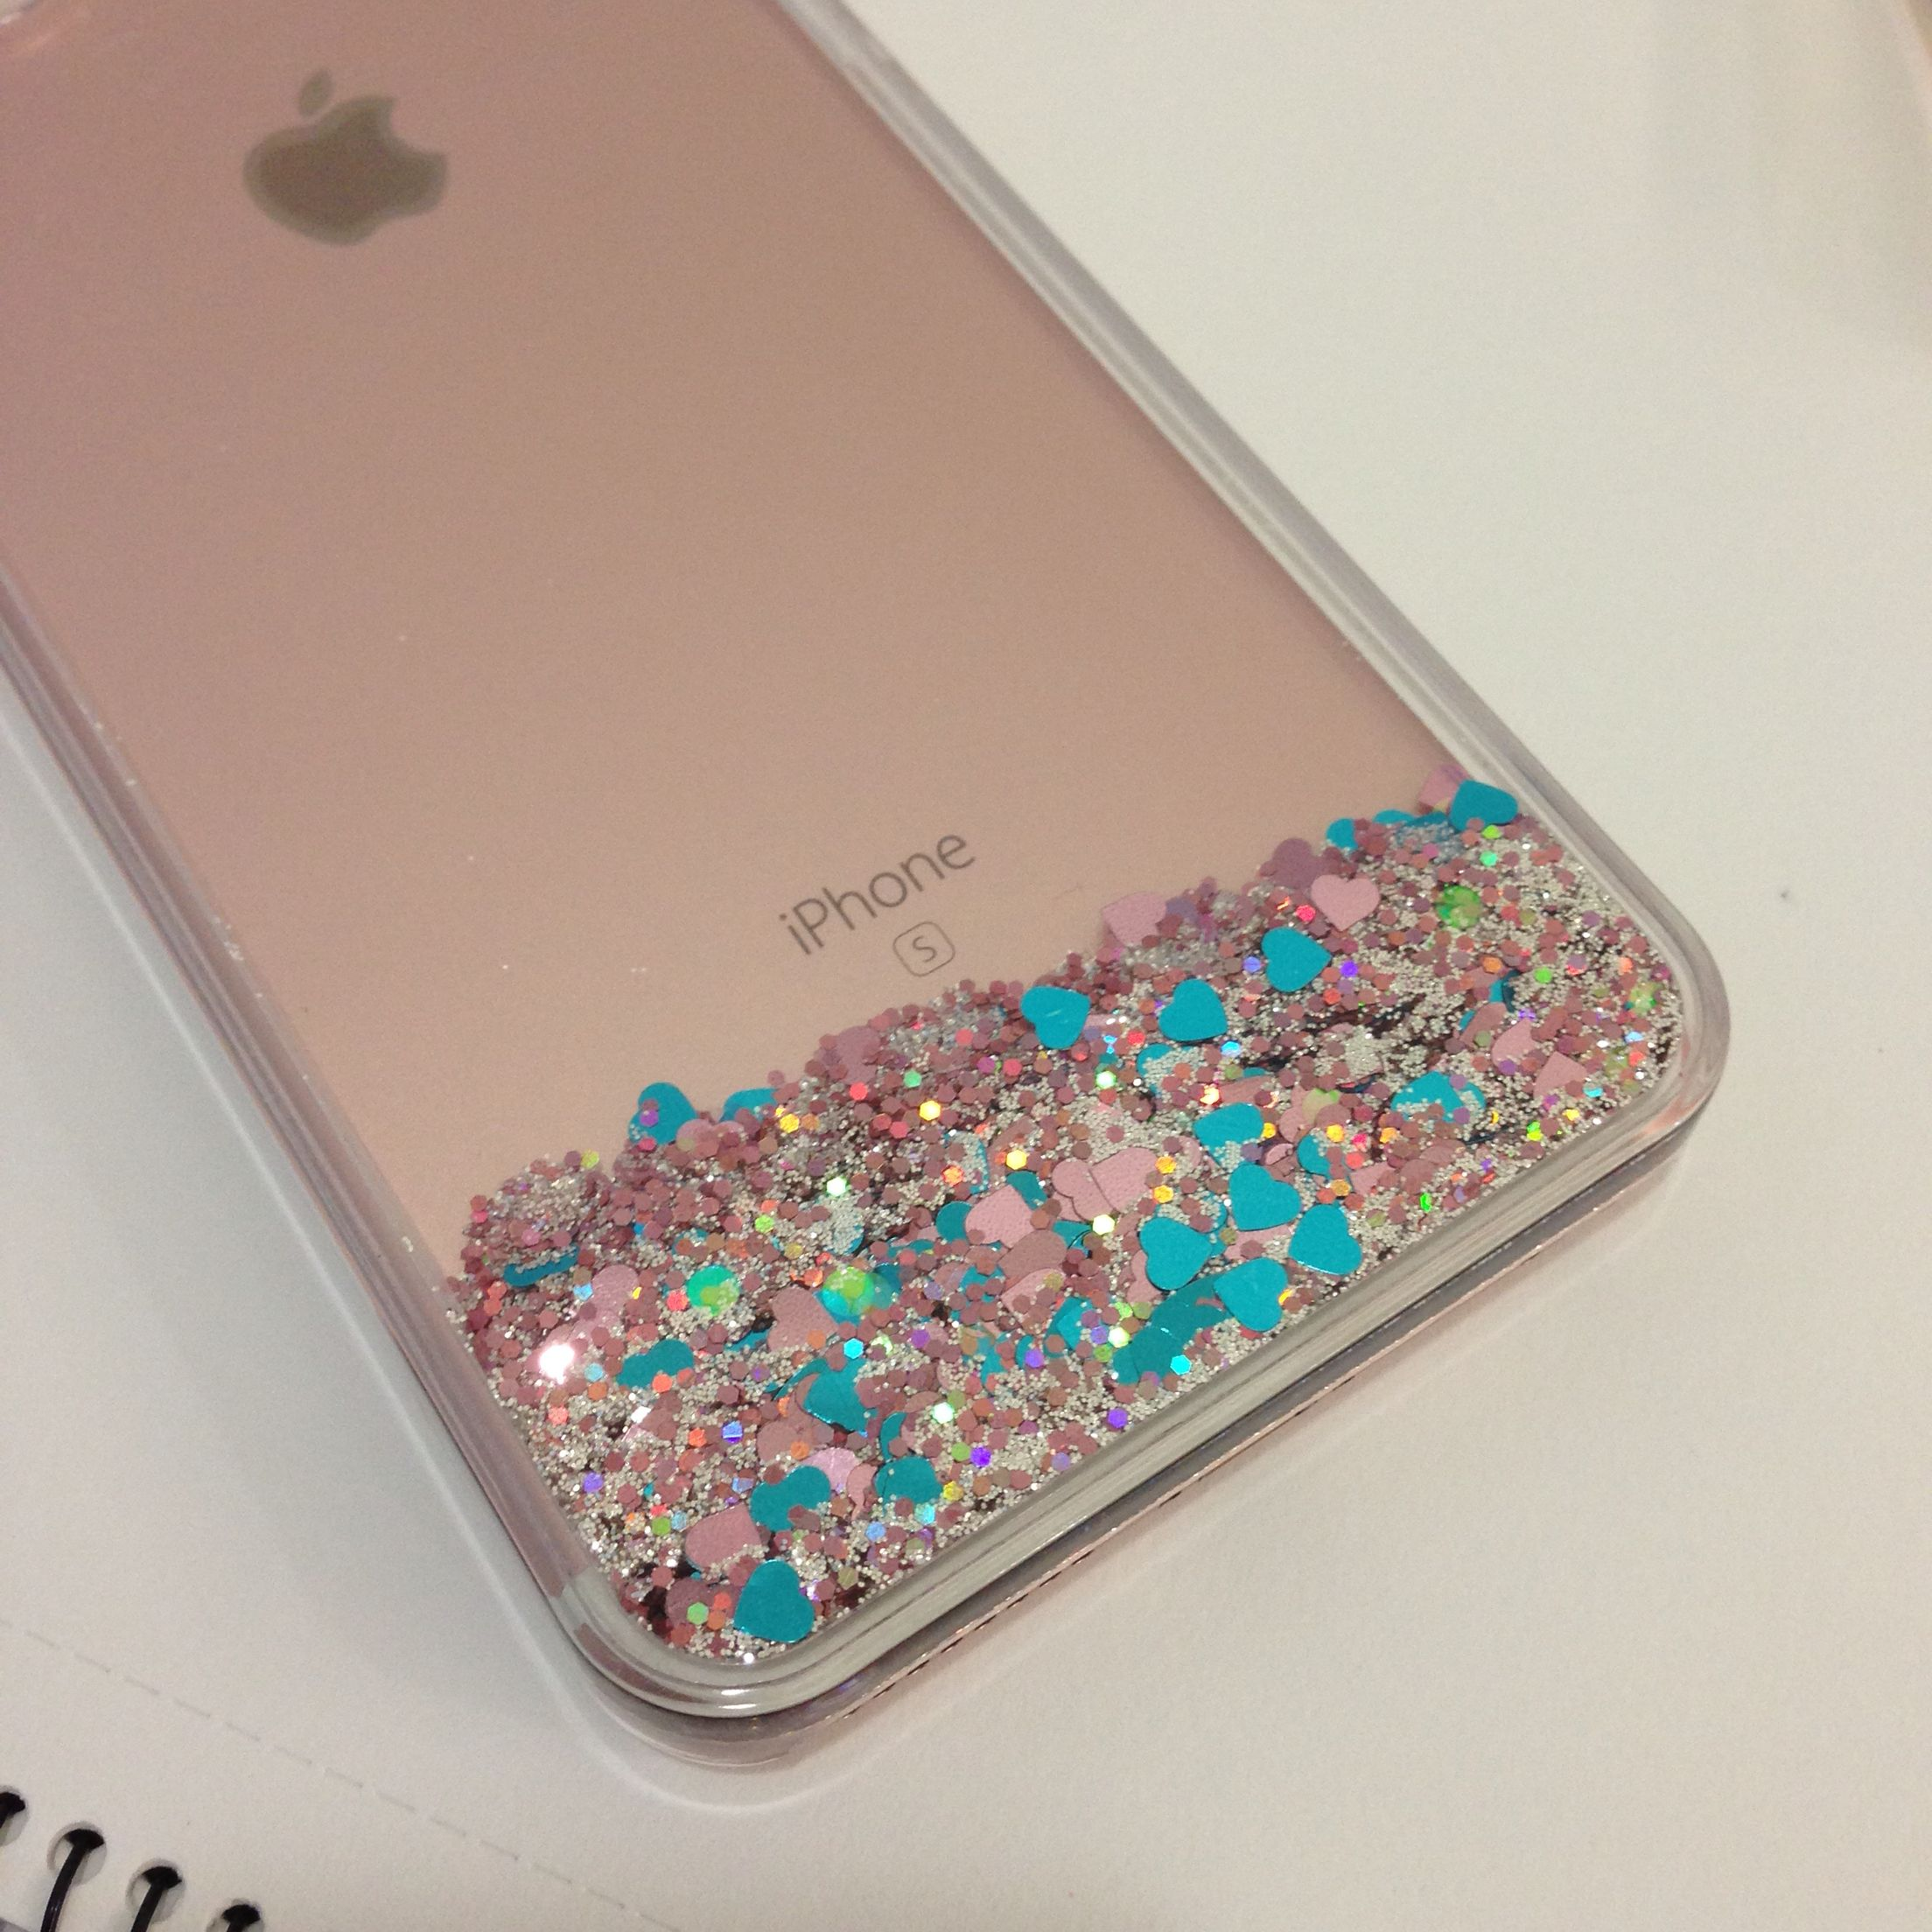 My Perfect Iphone 6s Plus Rose Gold Casing Floating Glitter Particles That You Can Obsess Over All Day Long Iphone 6 Plus Case Phone Case Accessories Iphone